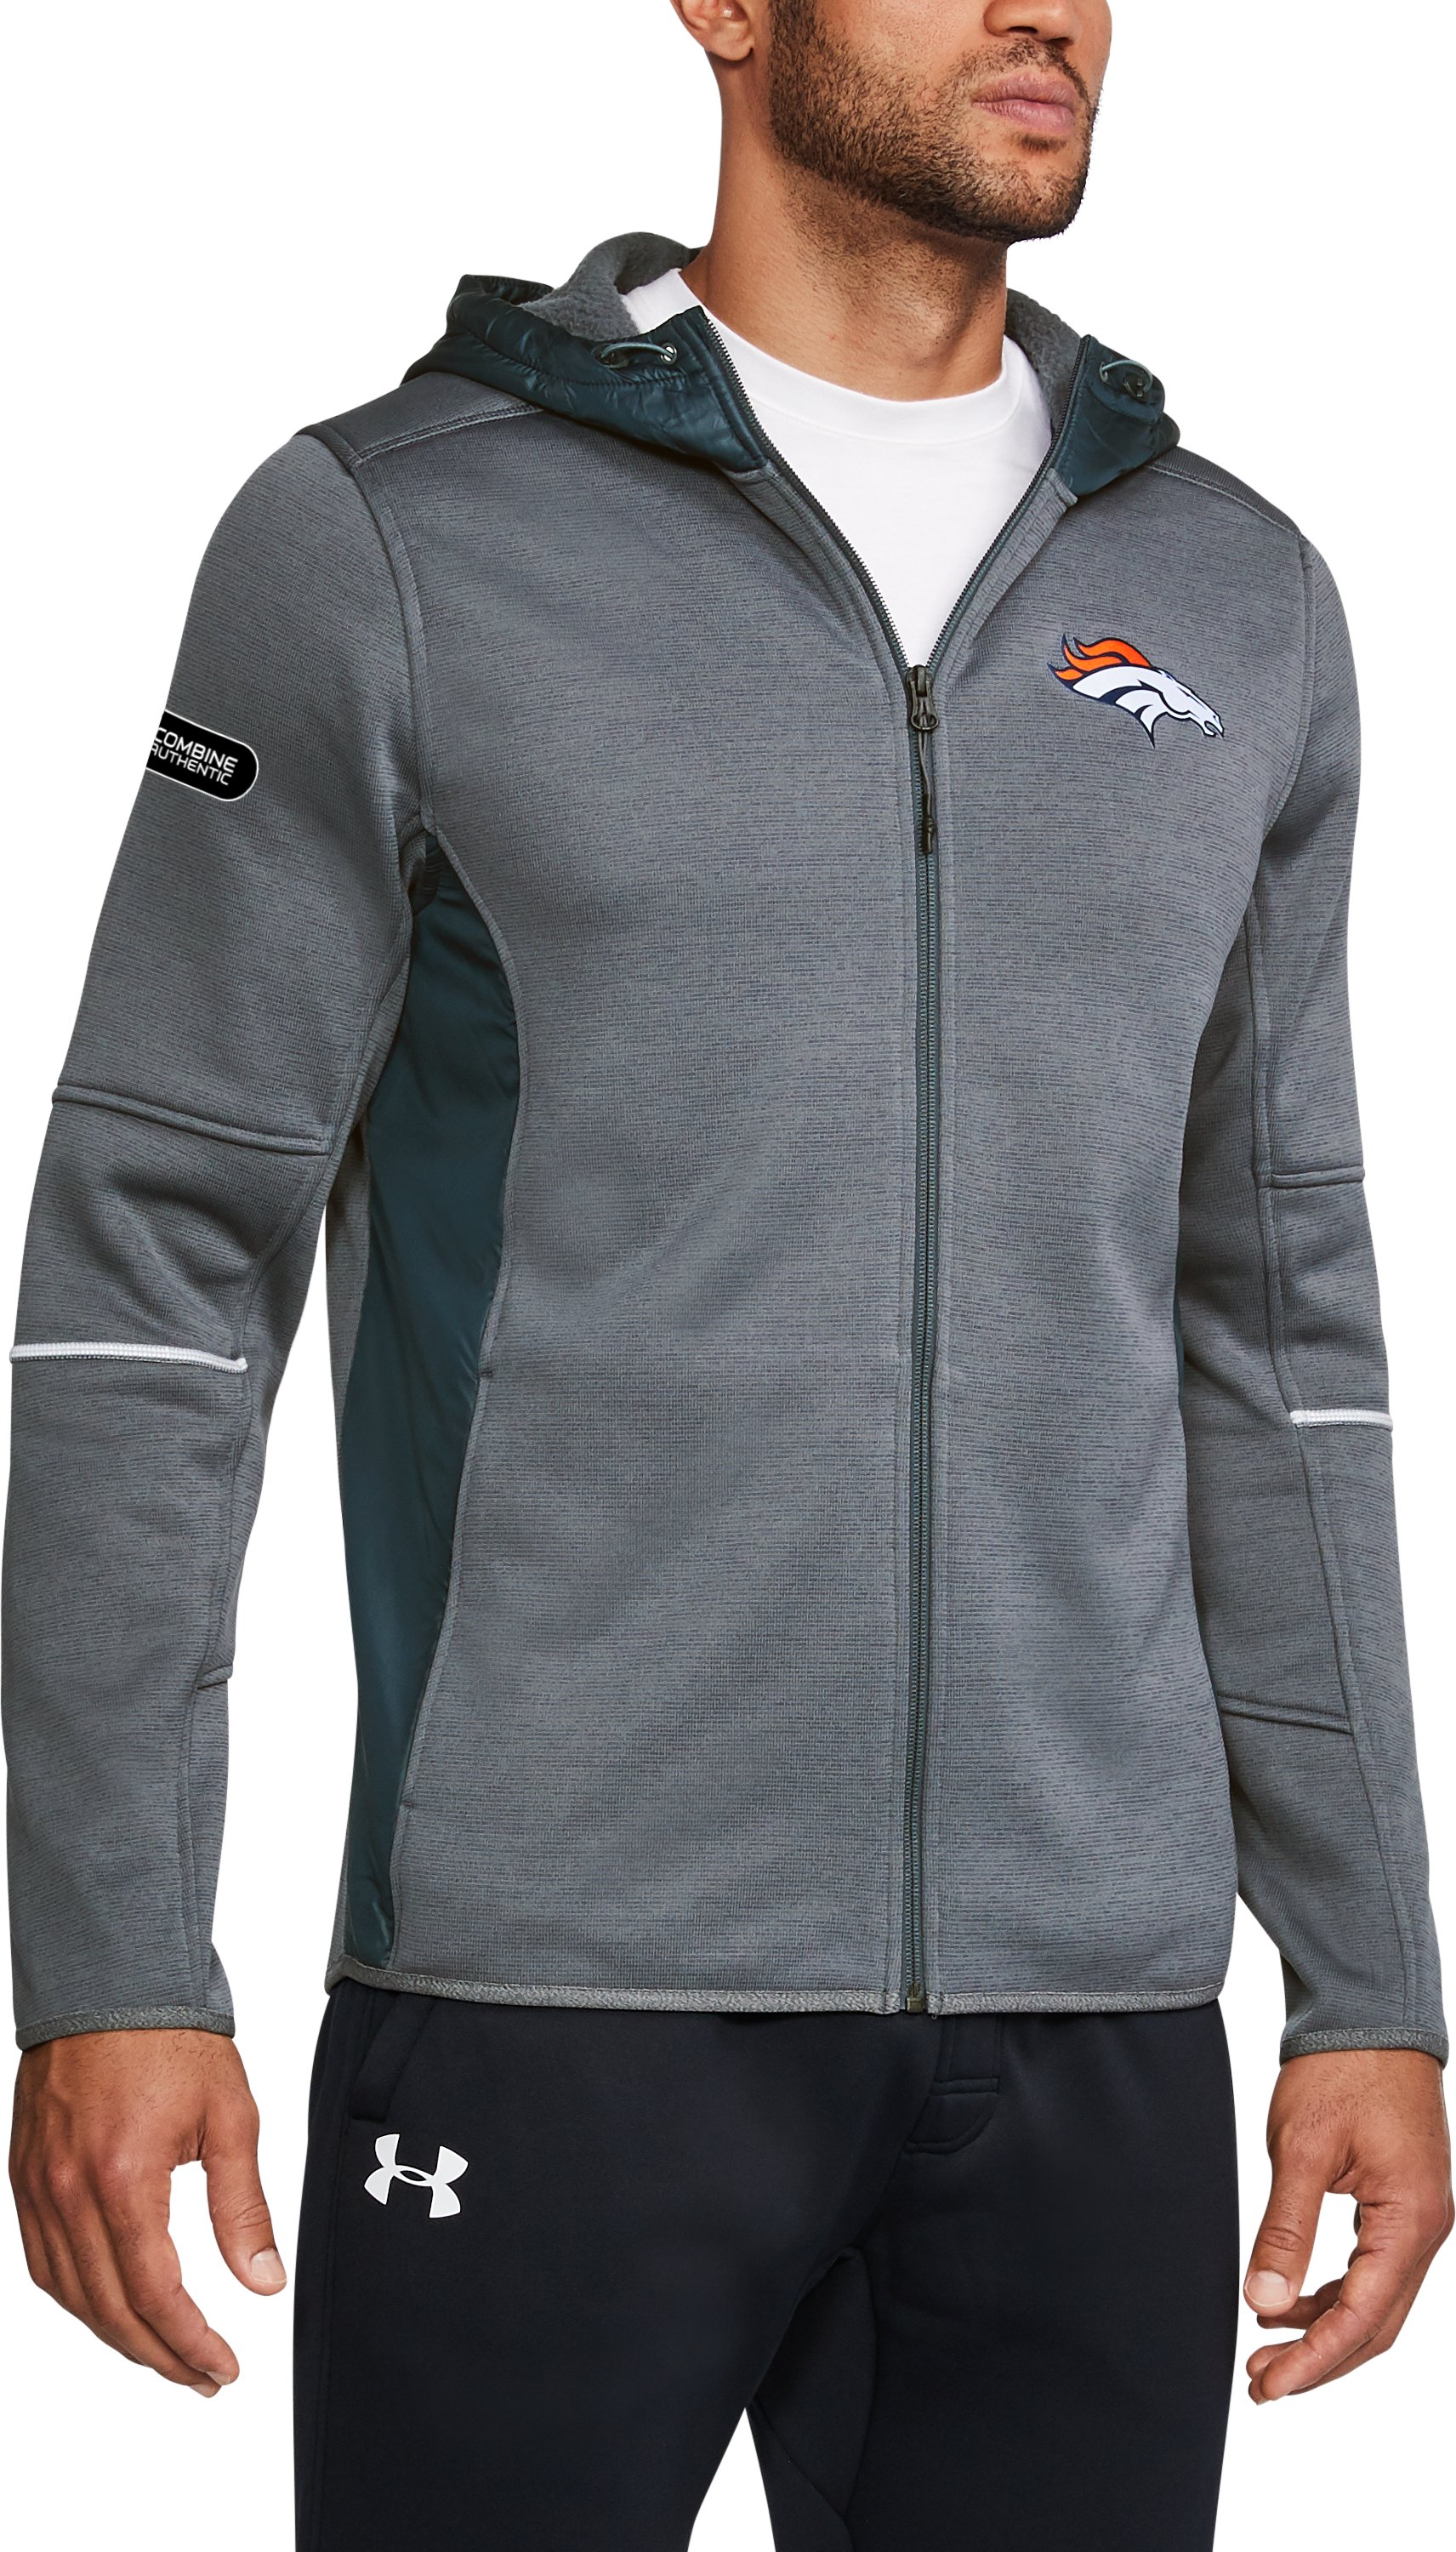 Men's NFL Combine Authentic UA Storm Swacket, NFL_DENVER BRONCOS_RHINO